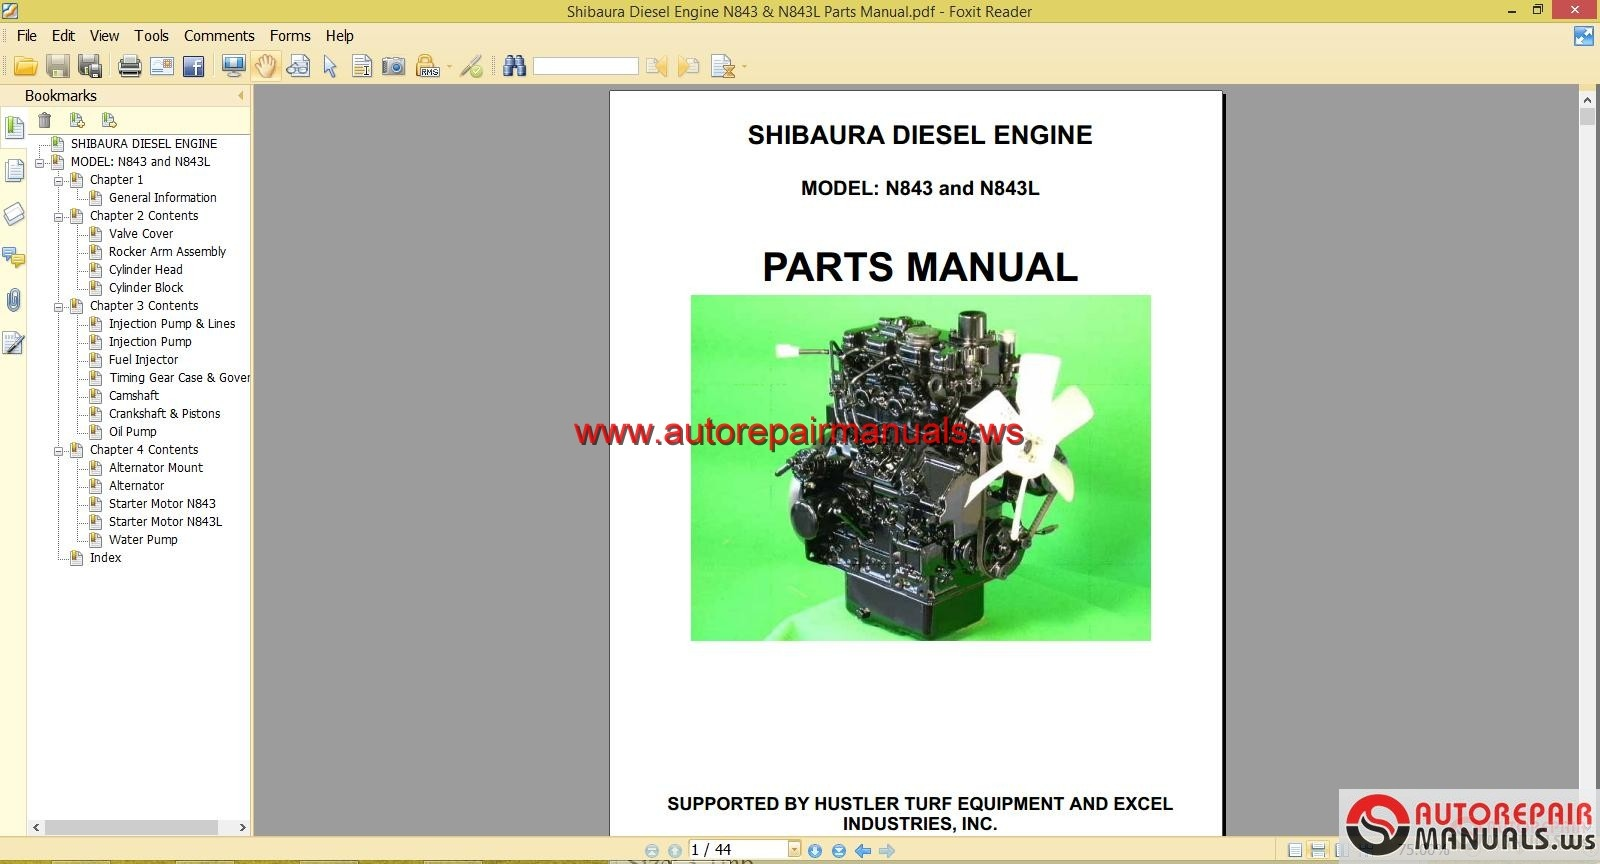 Shibaura Diesel Engine N843 & N843L Parts Manual | Auto